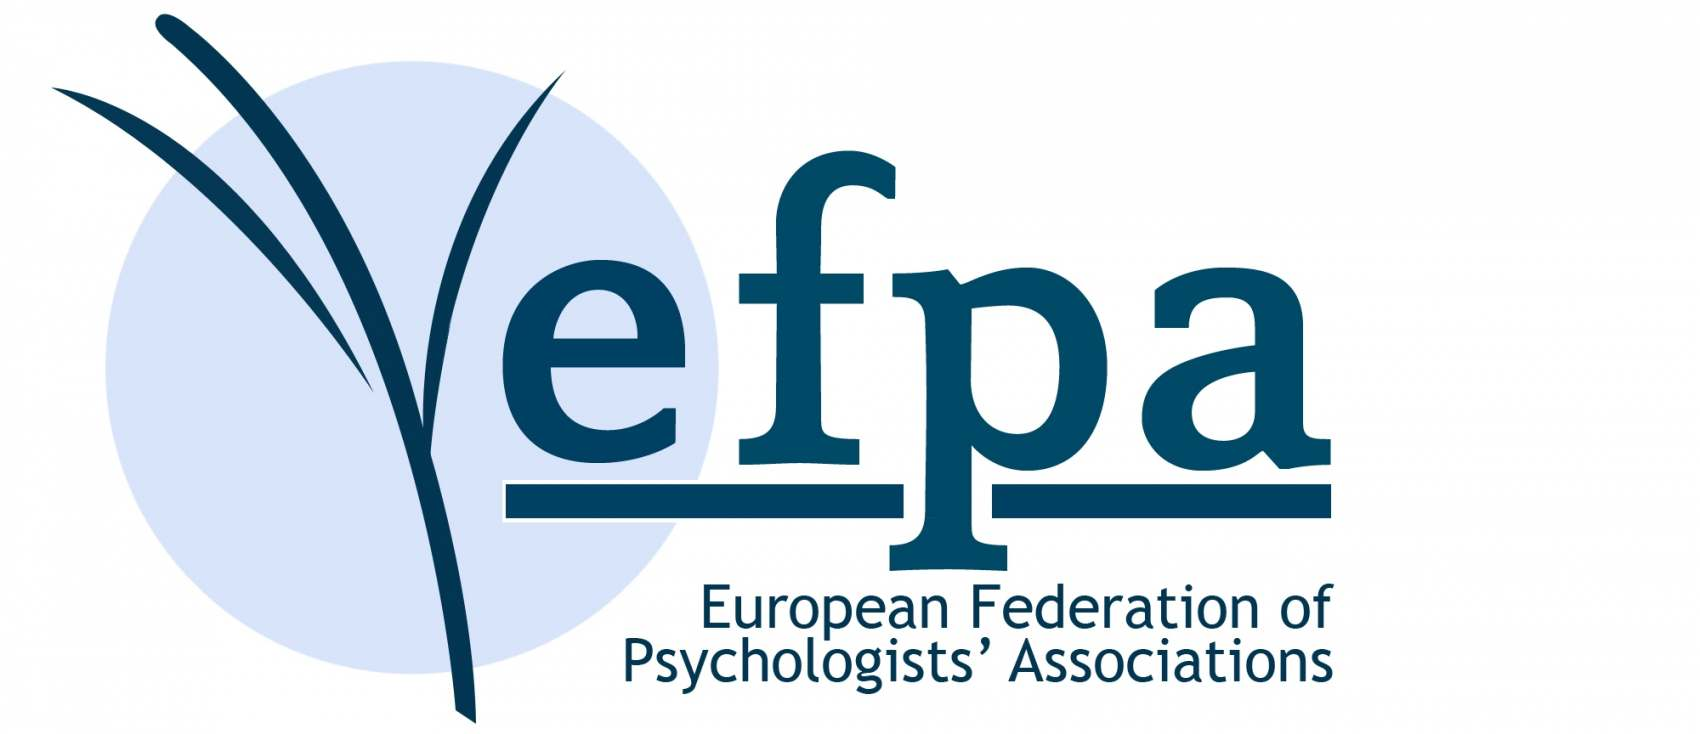 List of EFPA Member Associations_1137